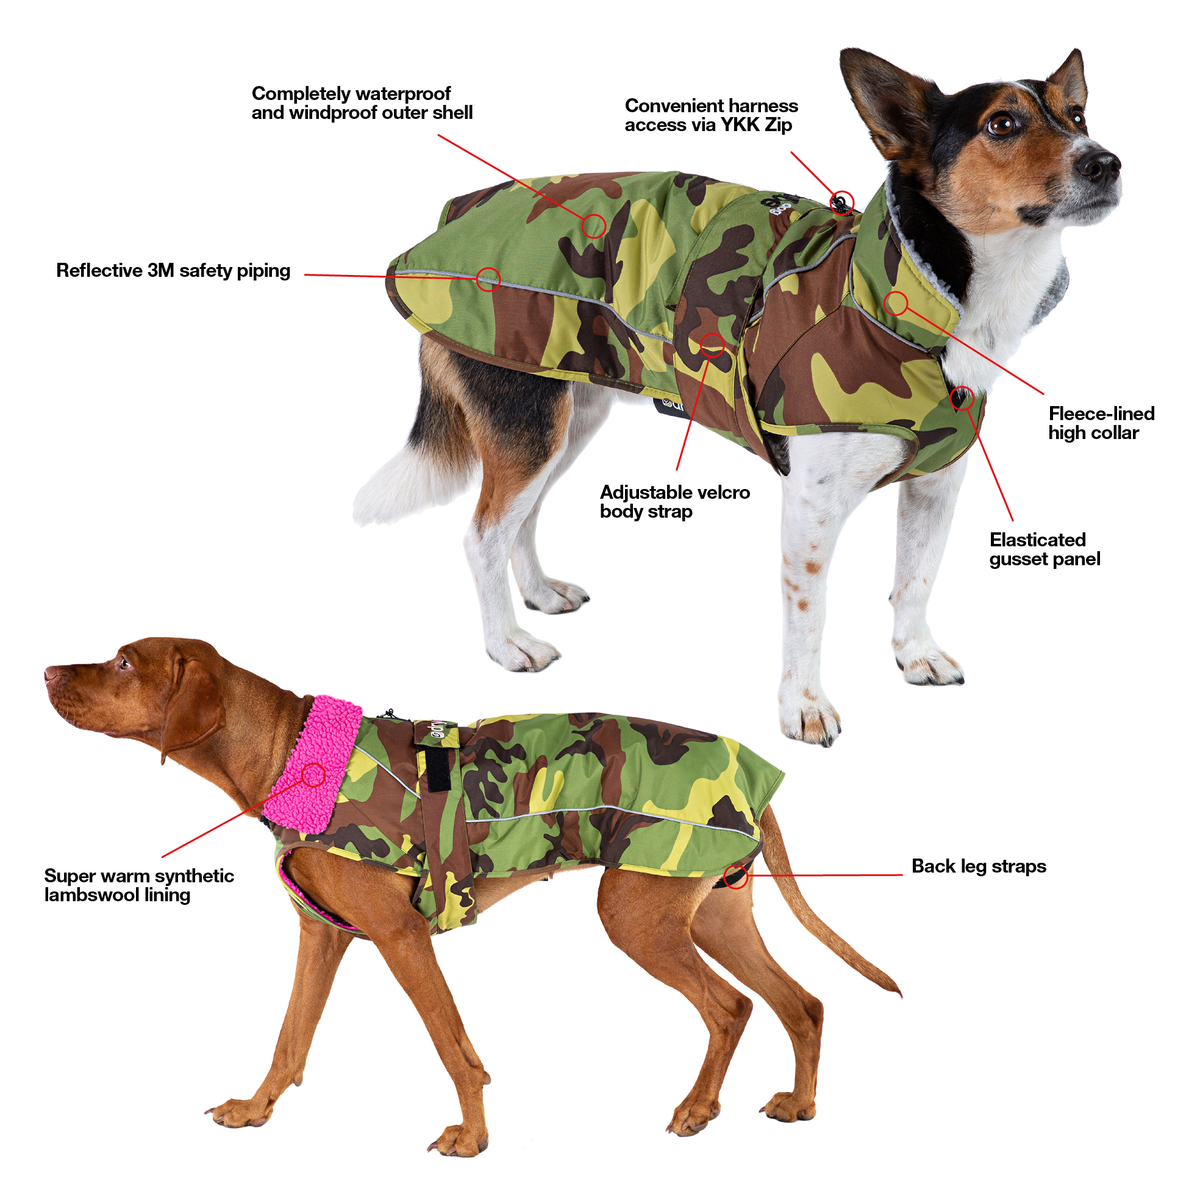 1| dryrobe dog infographic showing features